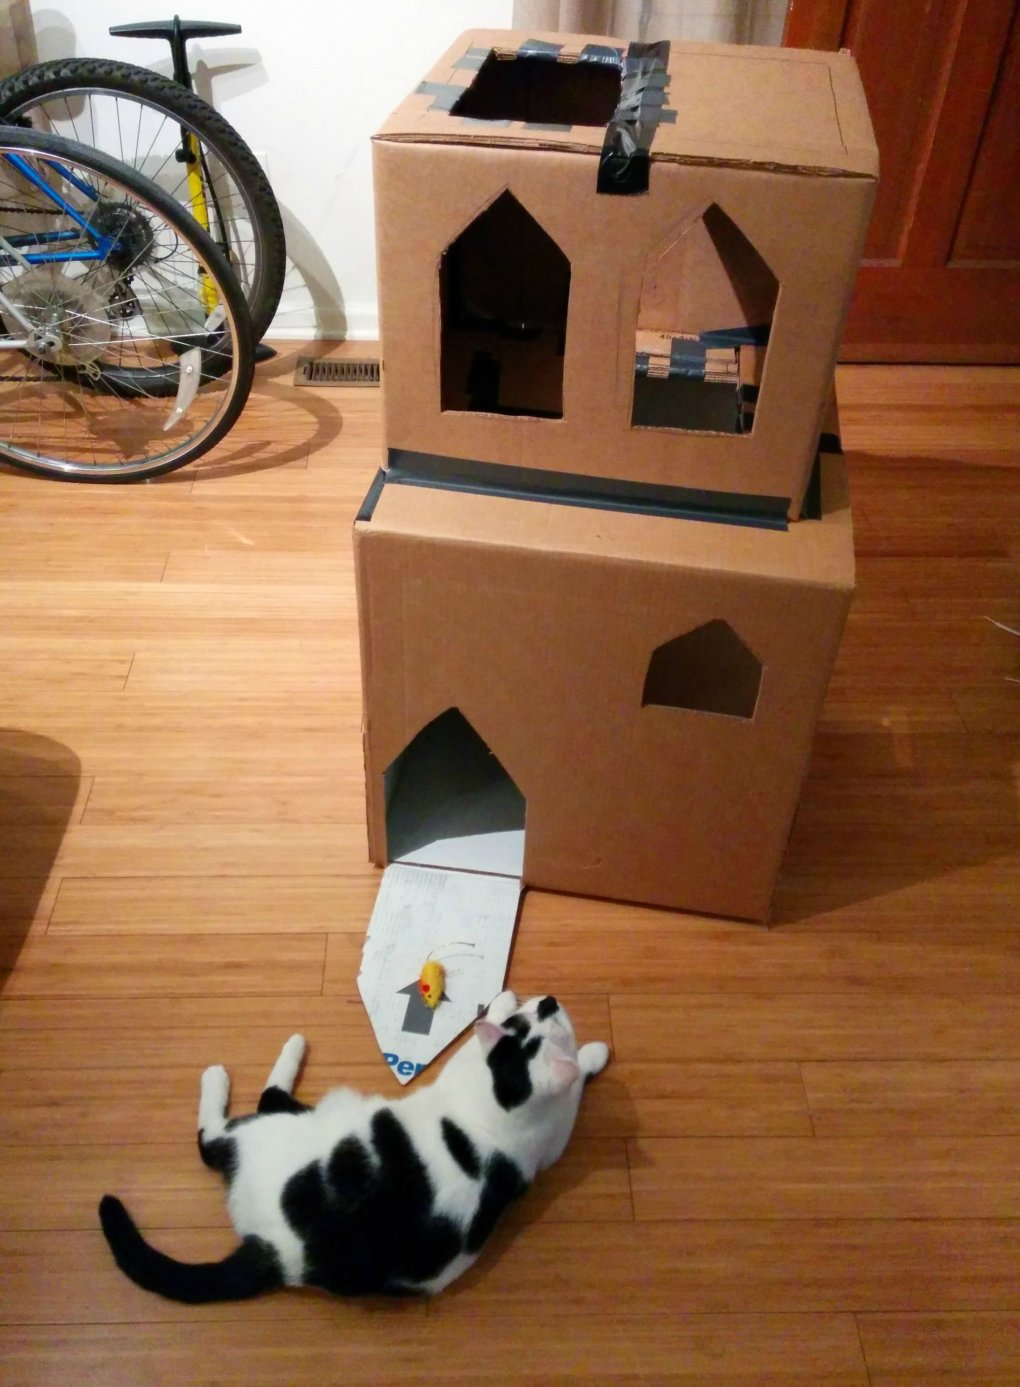 thc0hsn - why don't we build cardboard castle to our cats? this is how to do it.